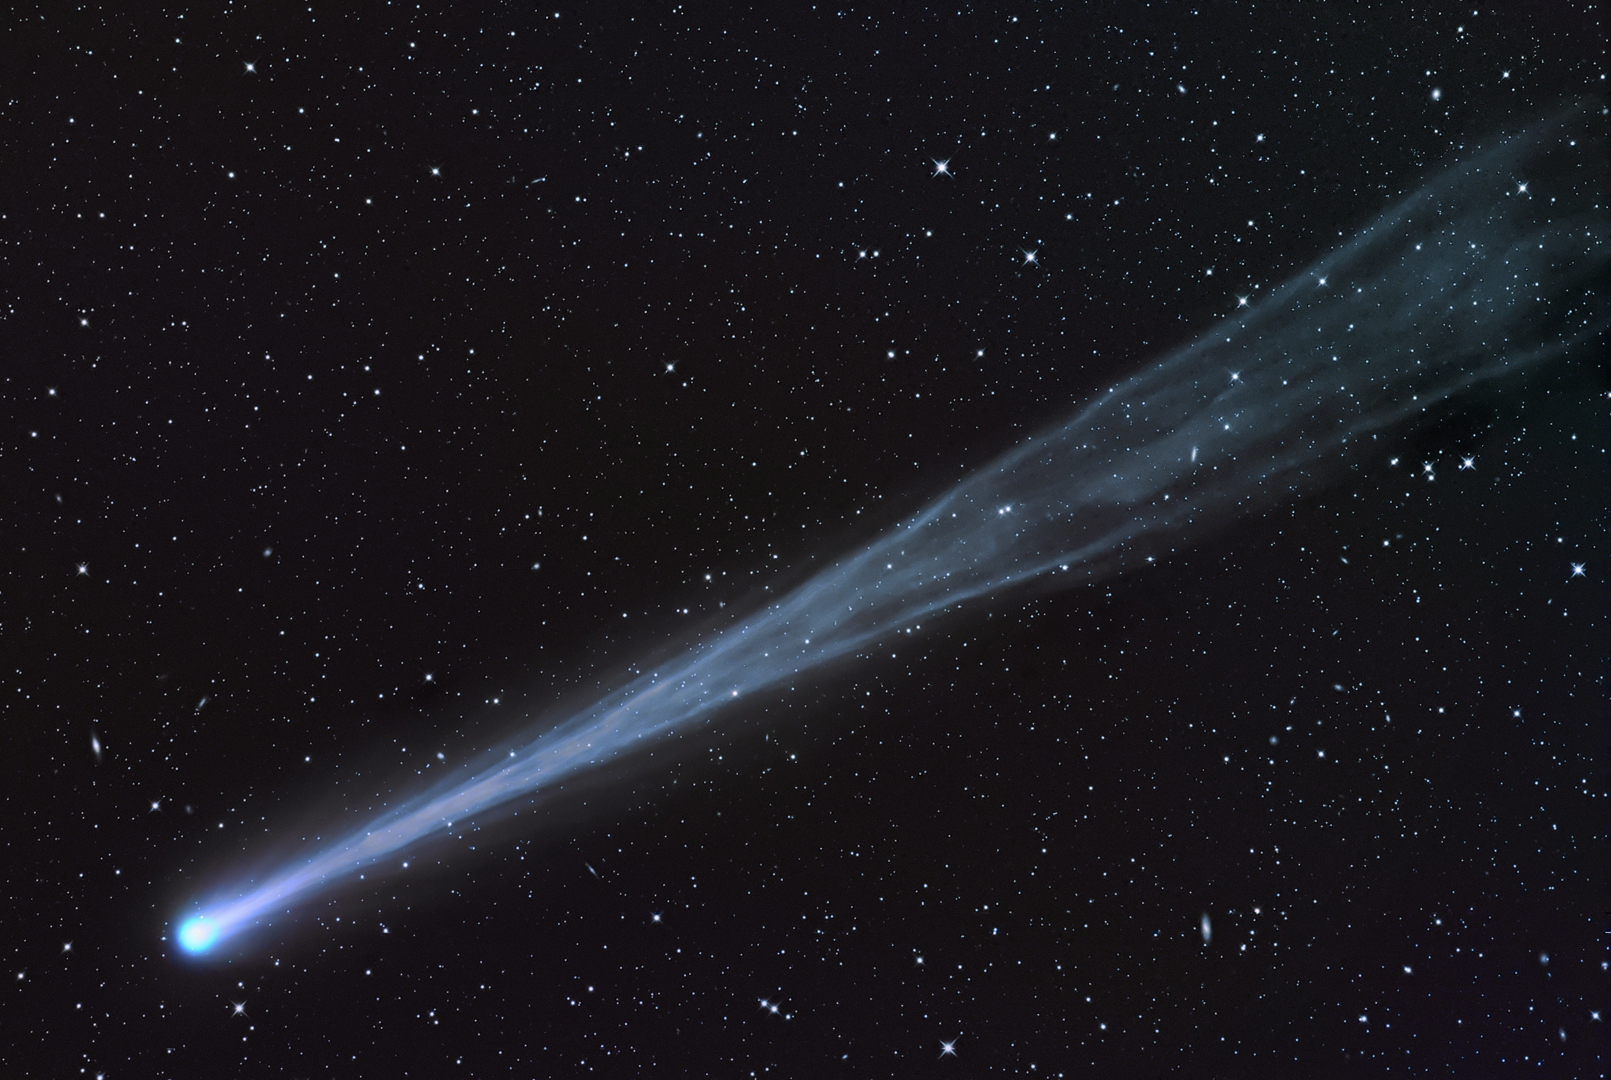 'Comets of the Centuries': 500 Years of the Greatest Comets Ever Seen